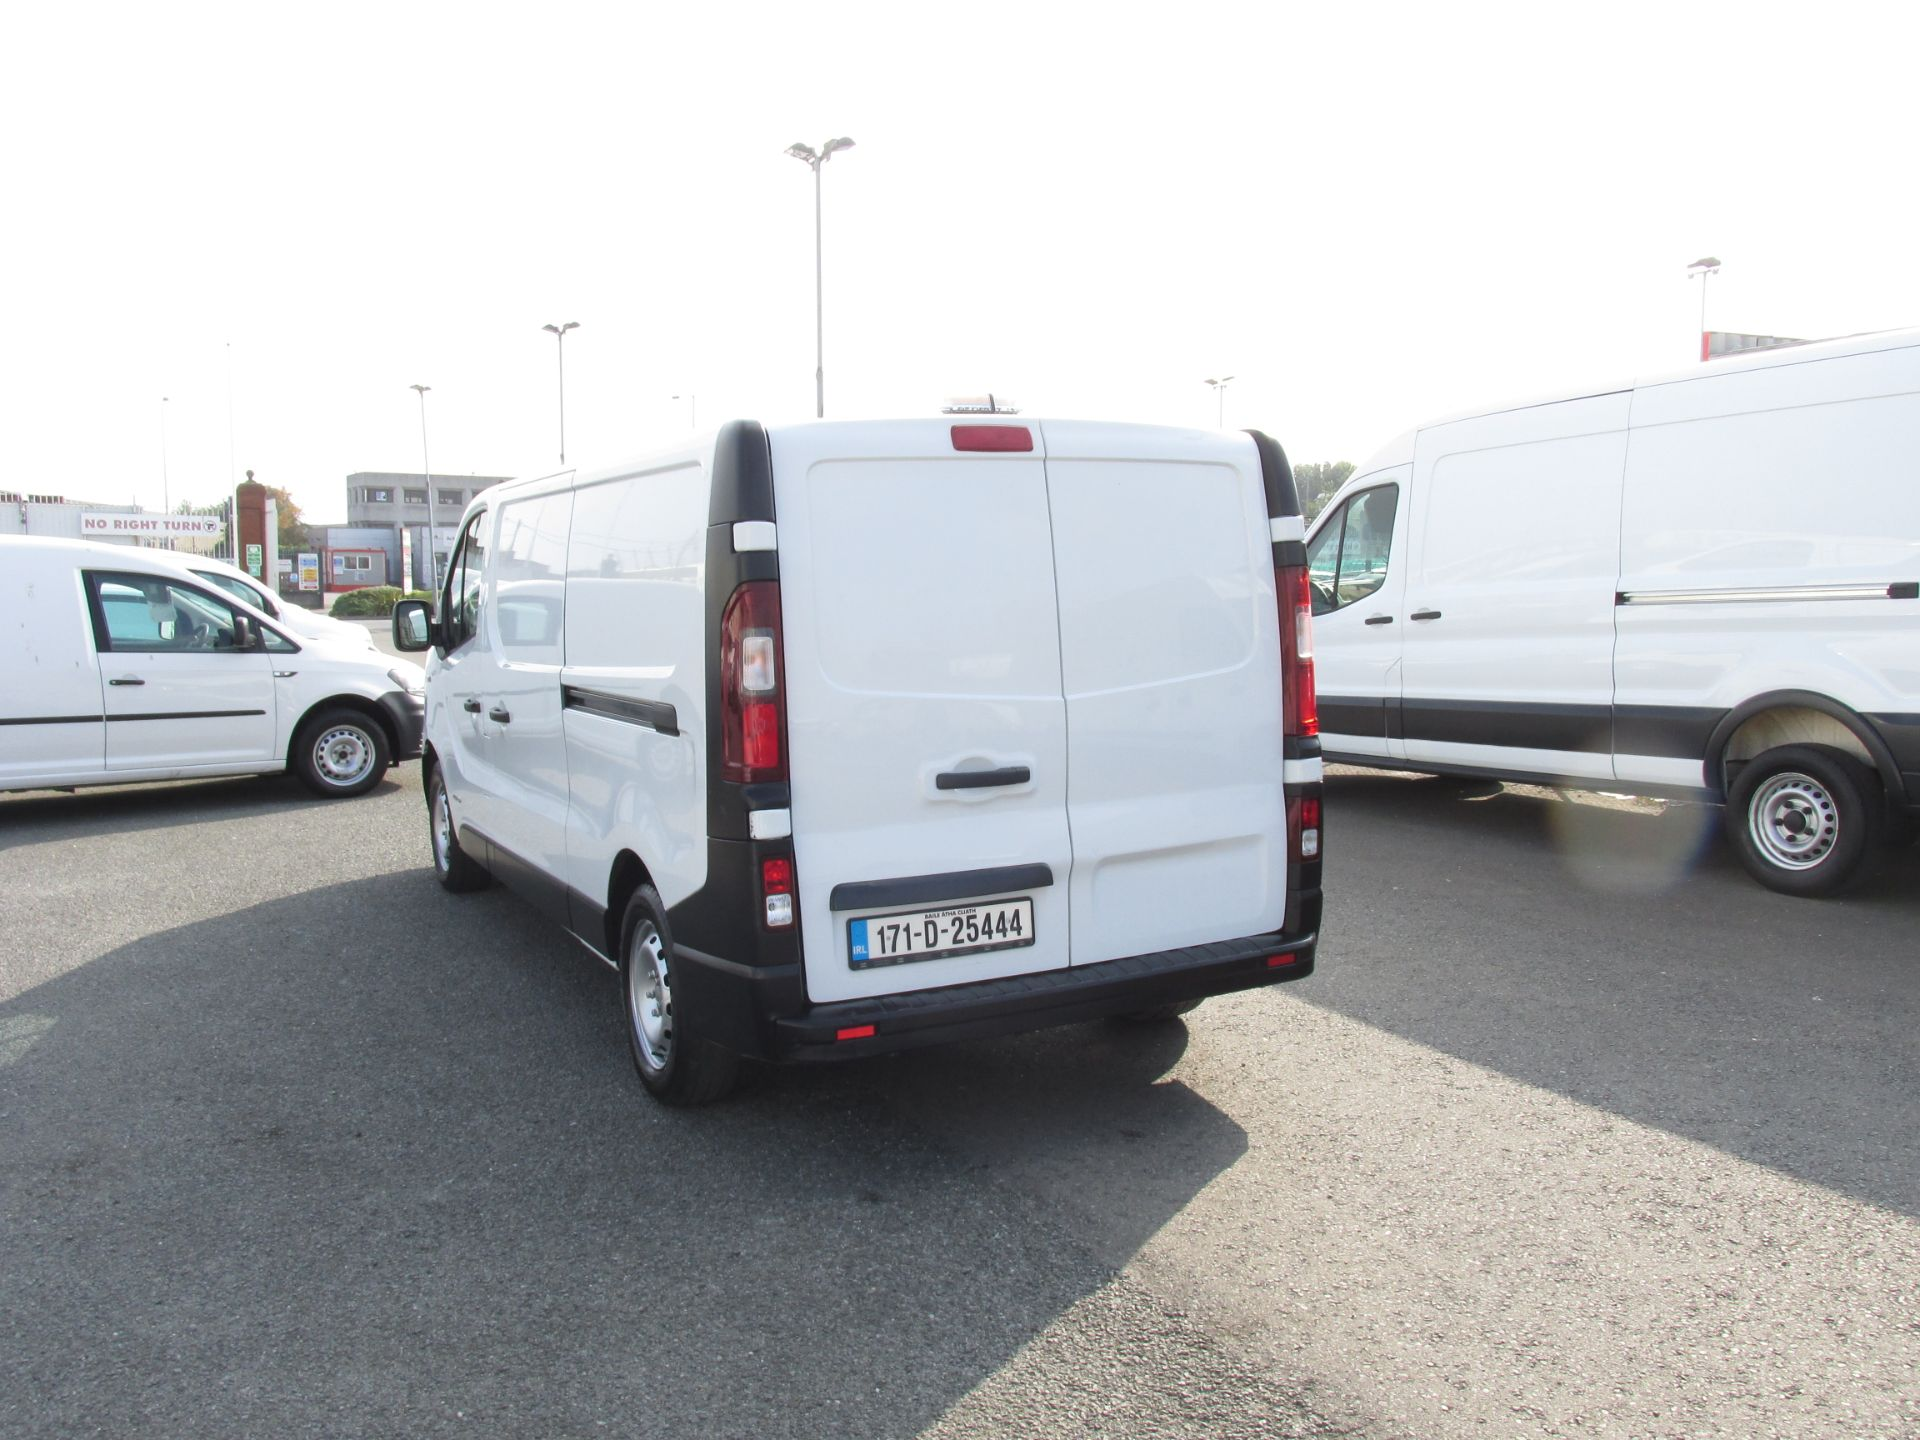 2017 Renault Trafic LL29 DCI 120 Business 3DR (171D25444) Image 5